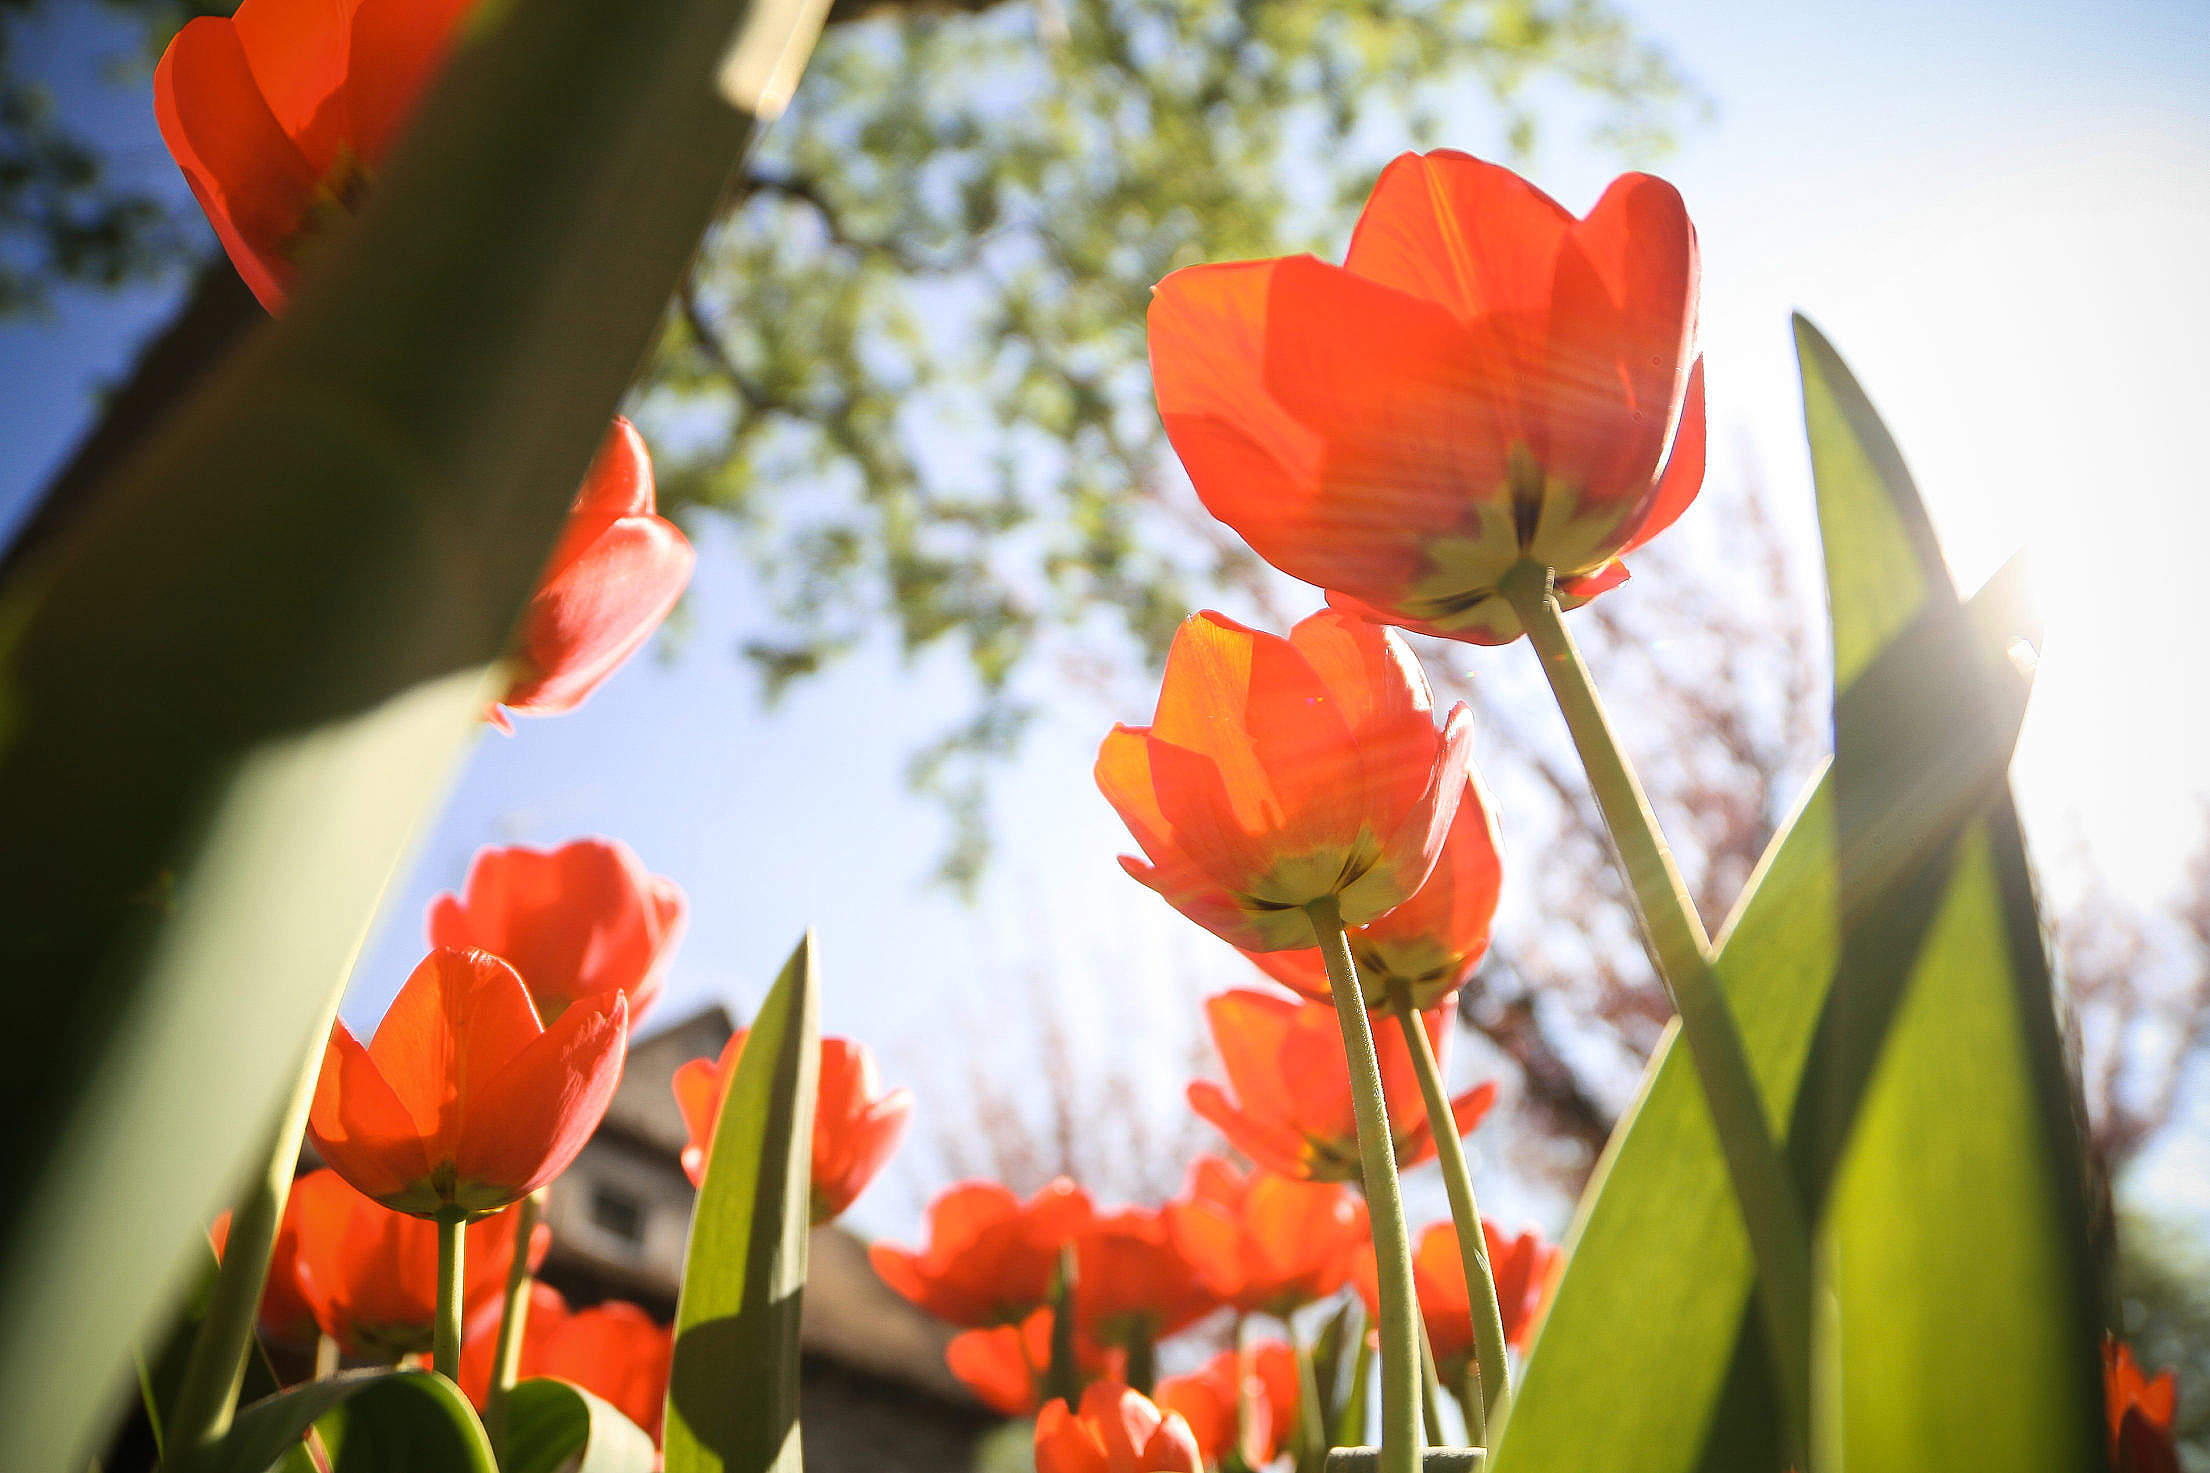 Another Tulips from below Free Stock Photo